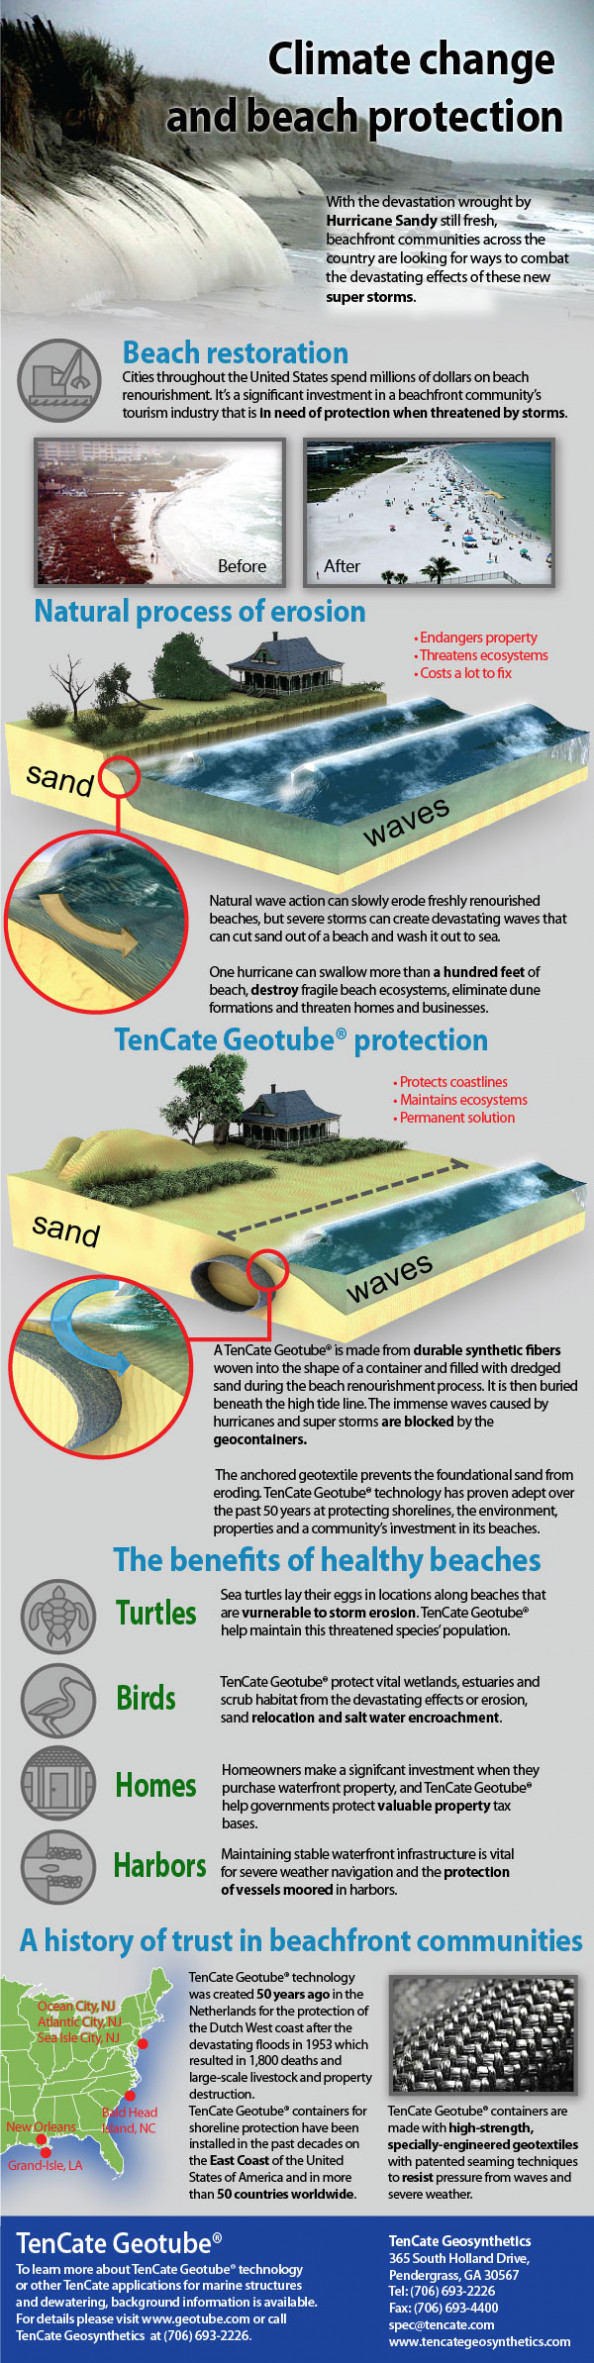 Climate Change, Beach Erosion and TenCate Geotube Infographic